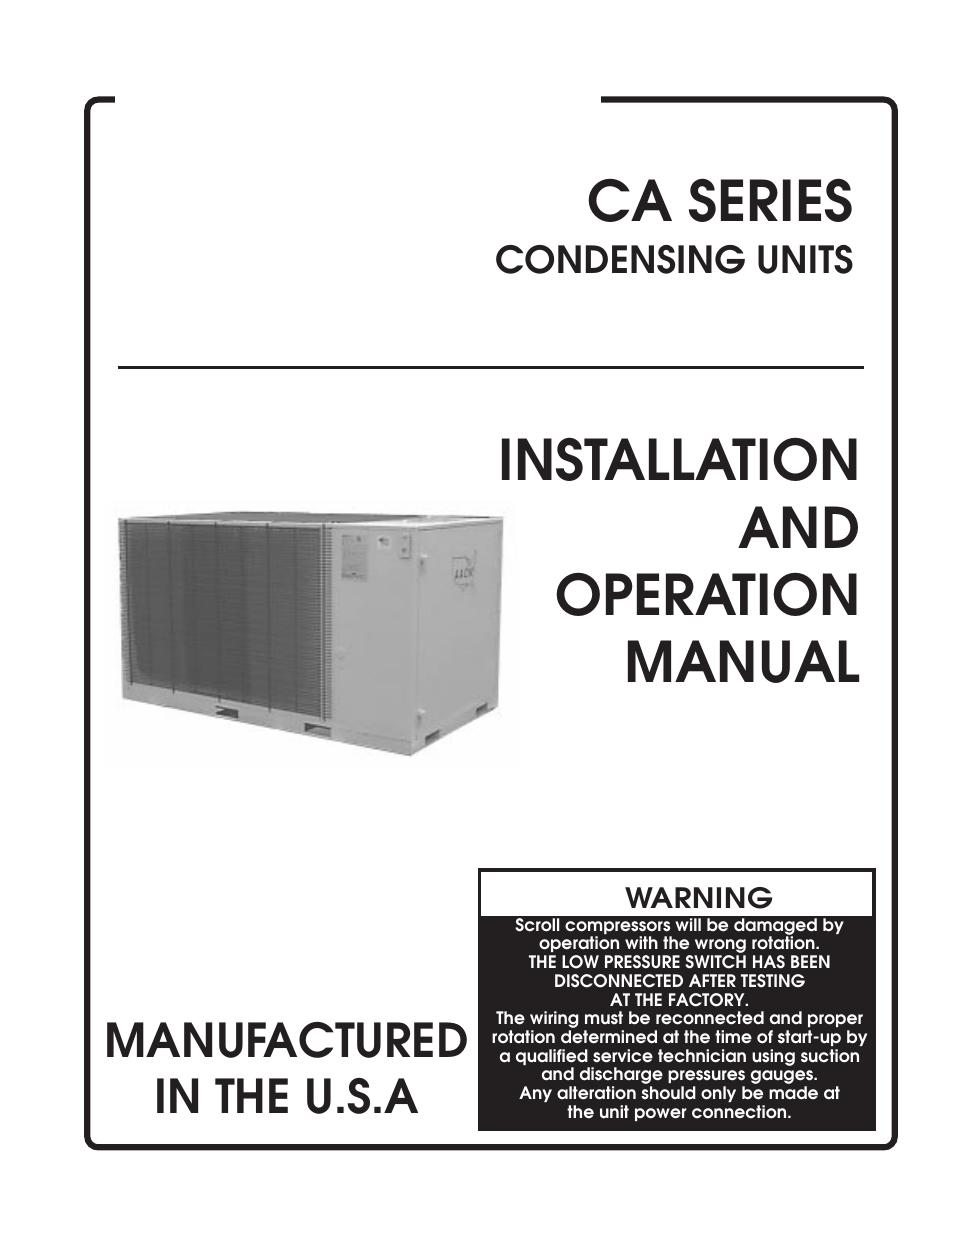 Aaon Rooftop Units Wiring Diagram moreover Aaon Wiring Diagram also Boiler Wiring Diagram as well Rheem Furnace Schematics moreover Aaon Rooftop Units Wiring Diagram. on aaon rn wiring diagrams